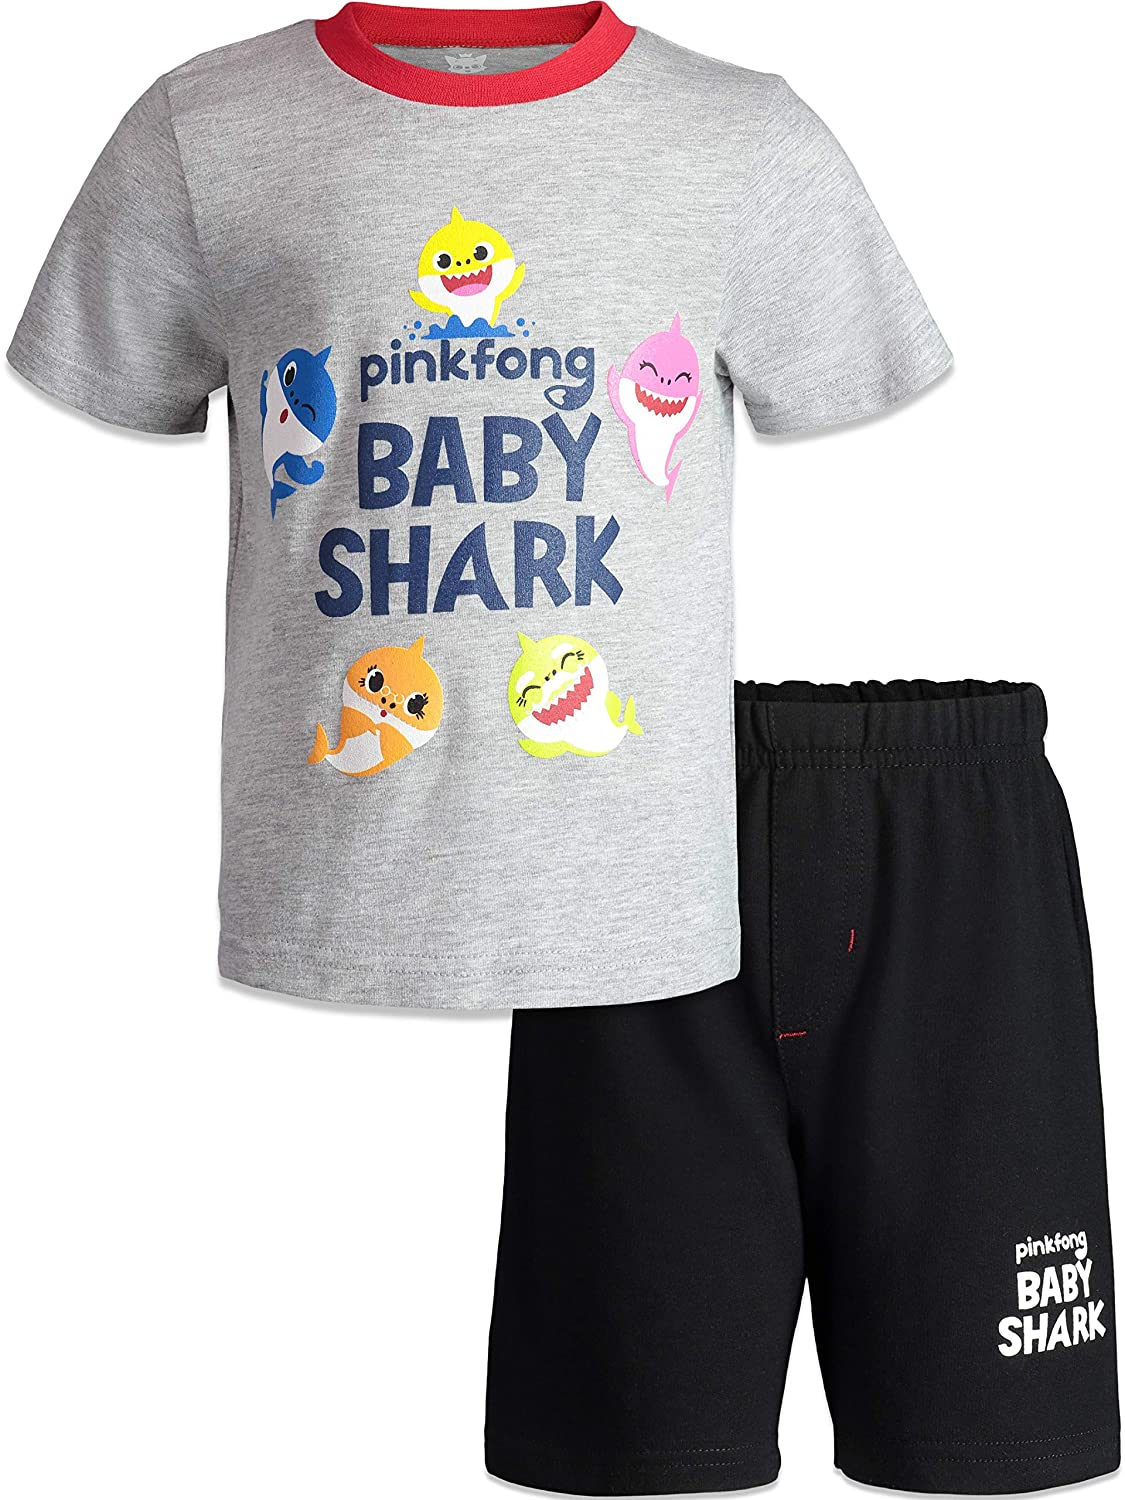 Baby Shark Boys Short Sleeve T-Shirt /& Shorts